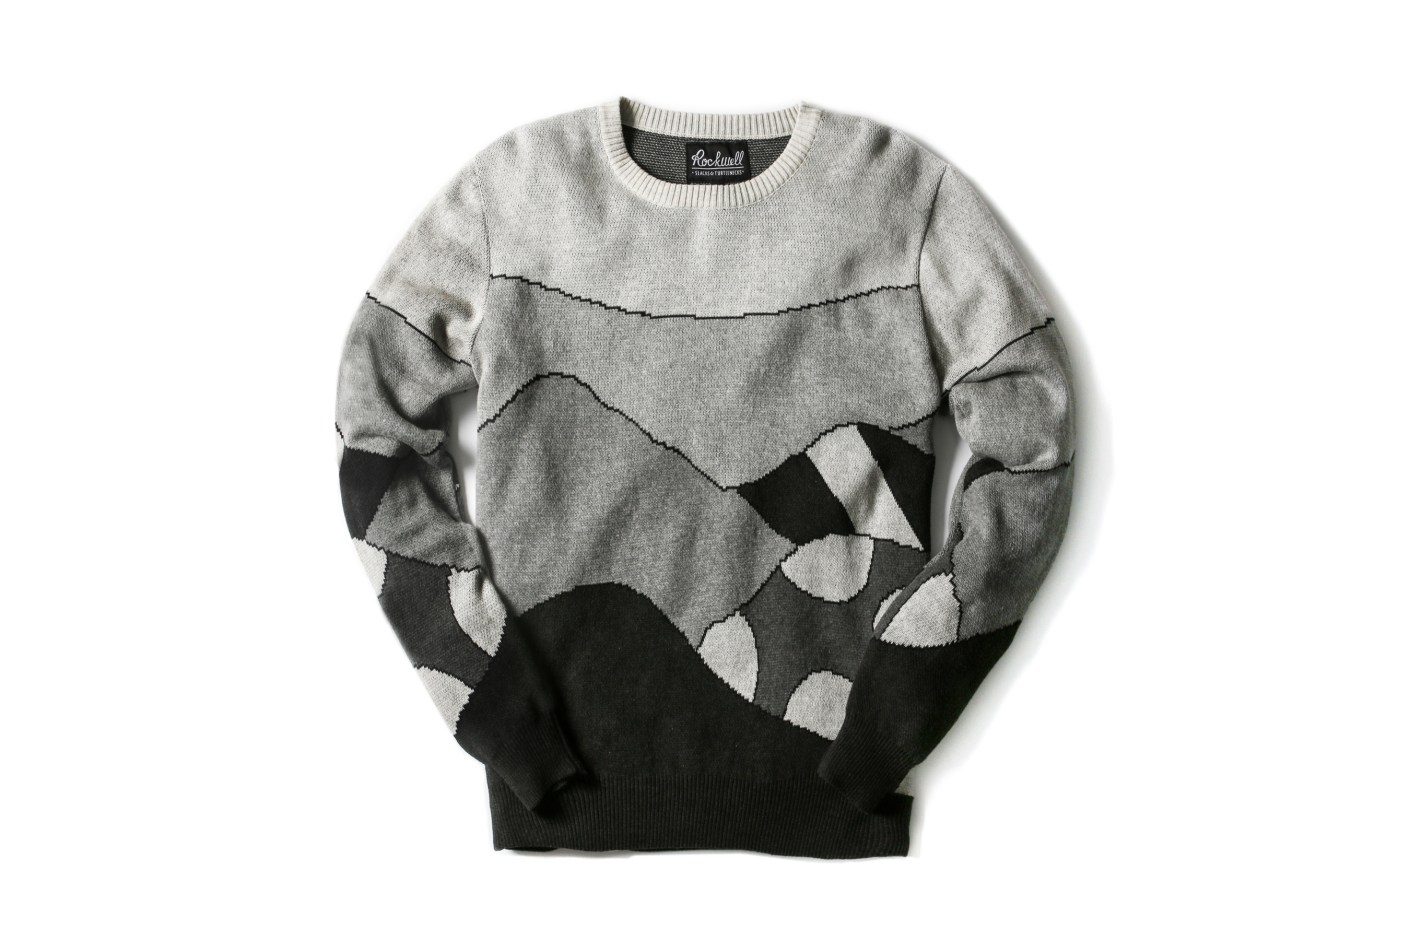 Image of Rockwell by Parra 2014 Fall Crewneck Collection